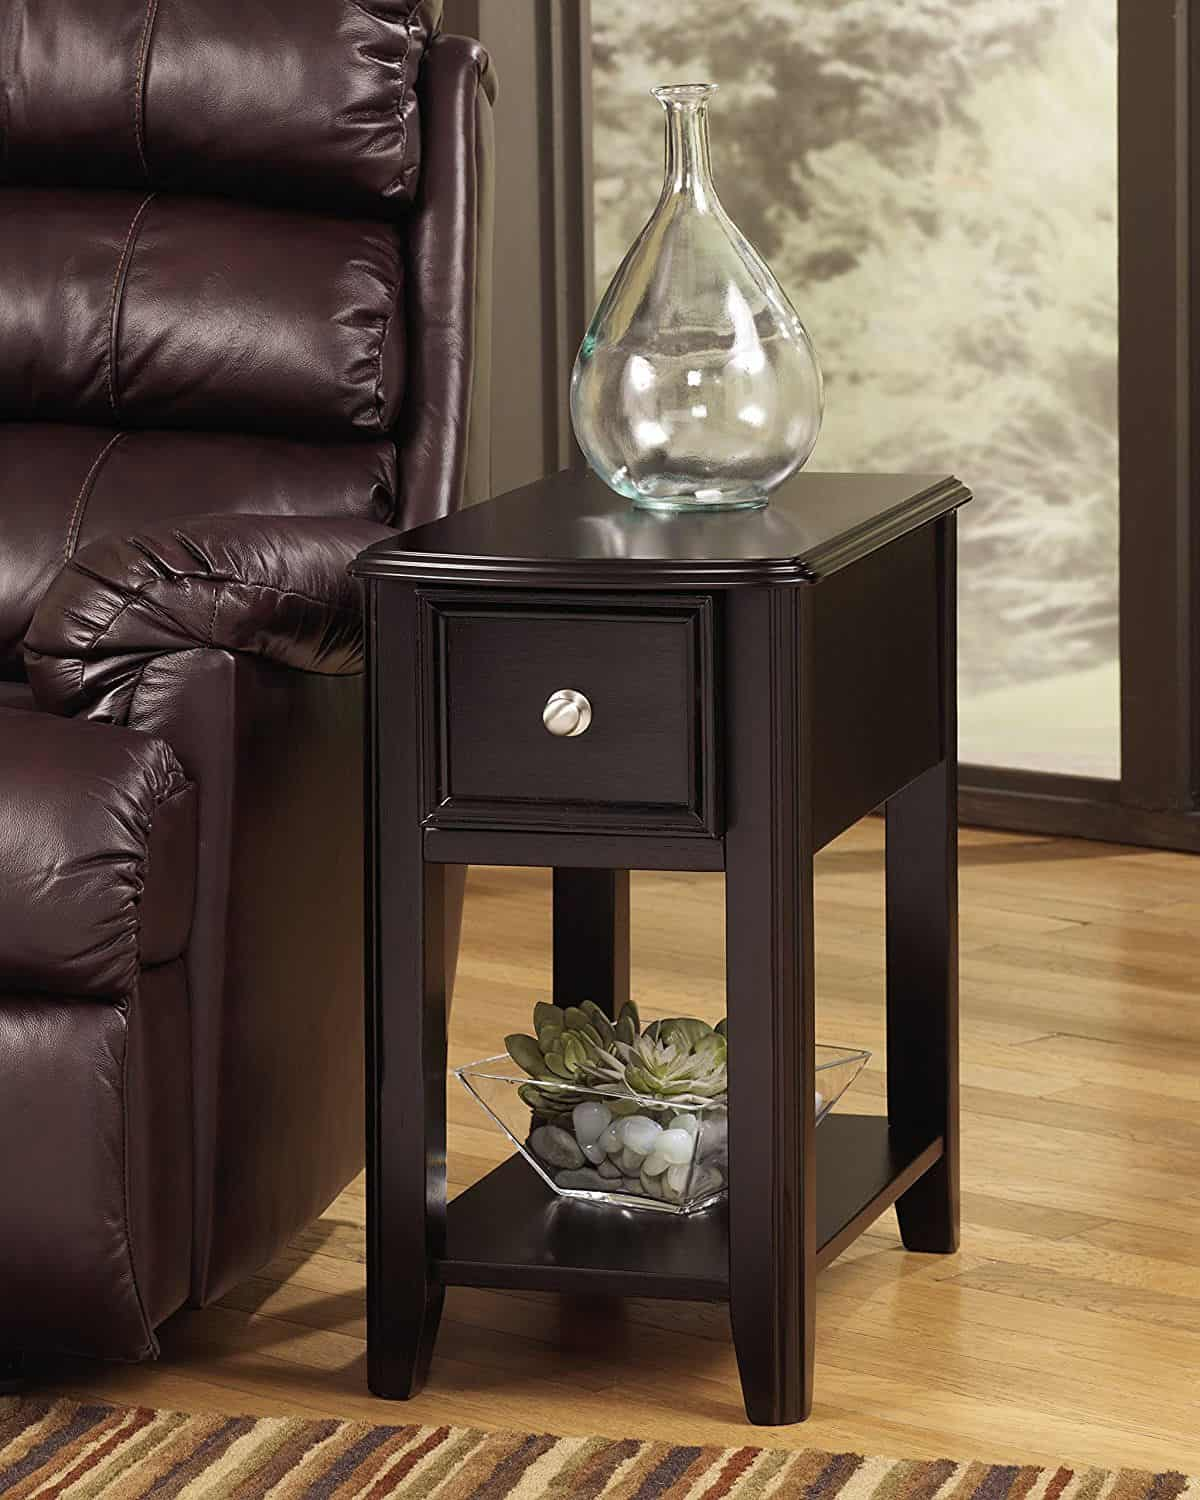 cheap side tables for living room rug ideas 14 terrific small table options your 2019 ashley furniture signature design breegin rectangular chair end with nickel tone hardware and